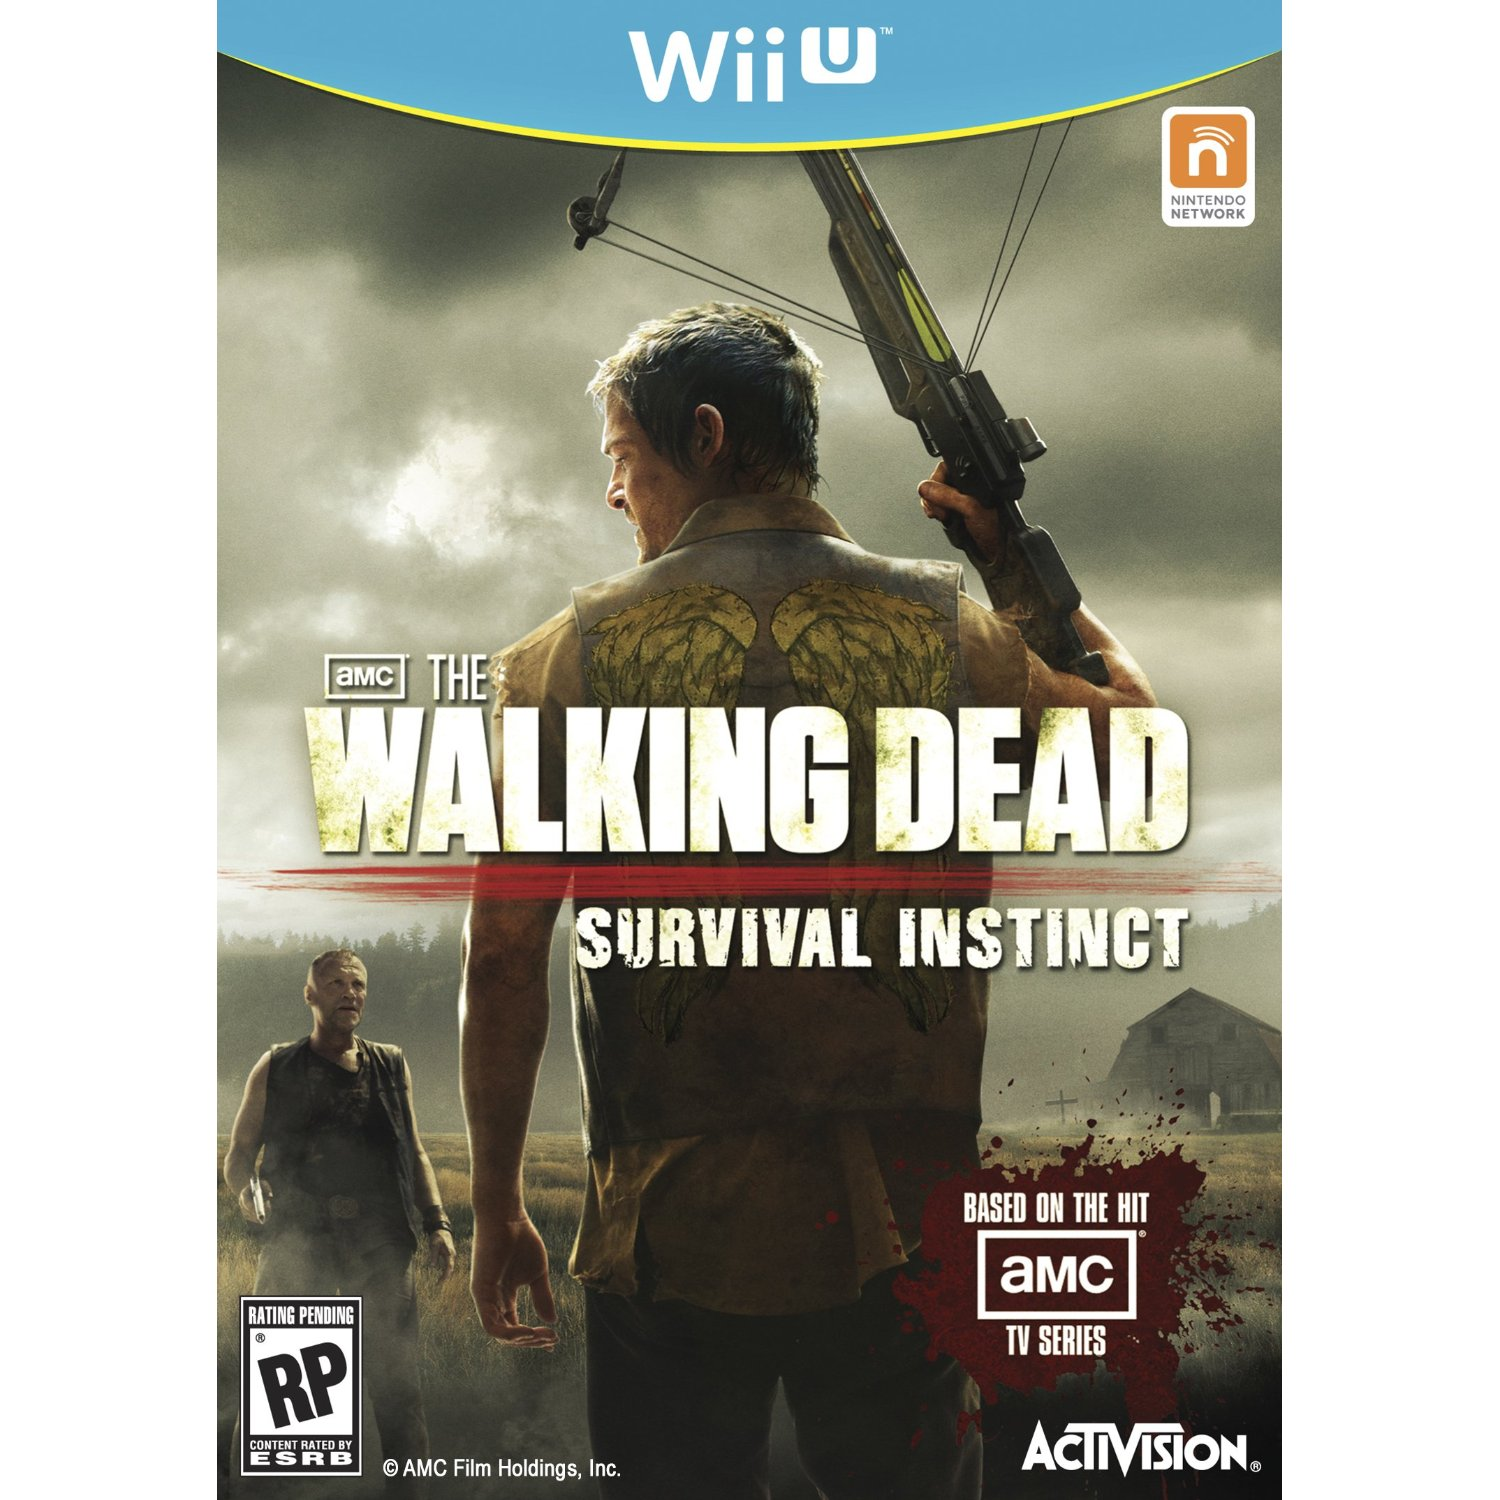 the_walking_dead_survival_instinct_eu_box_art_1